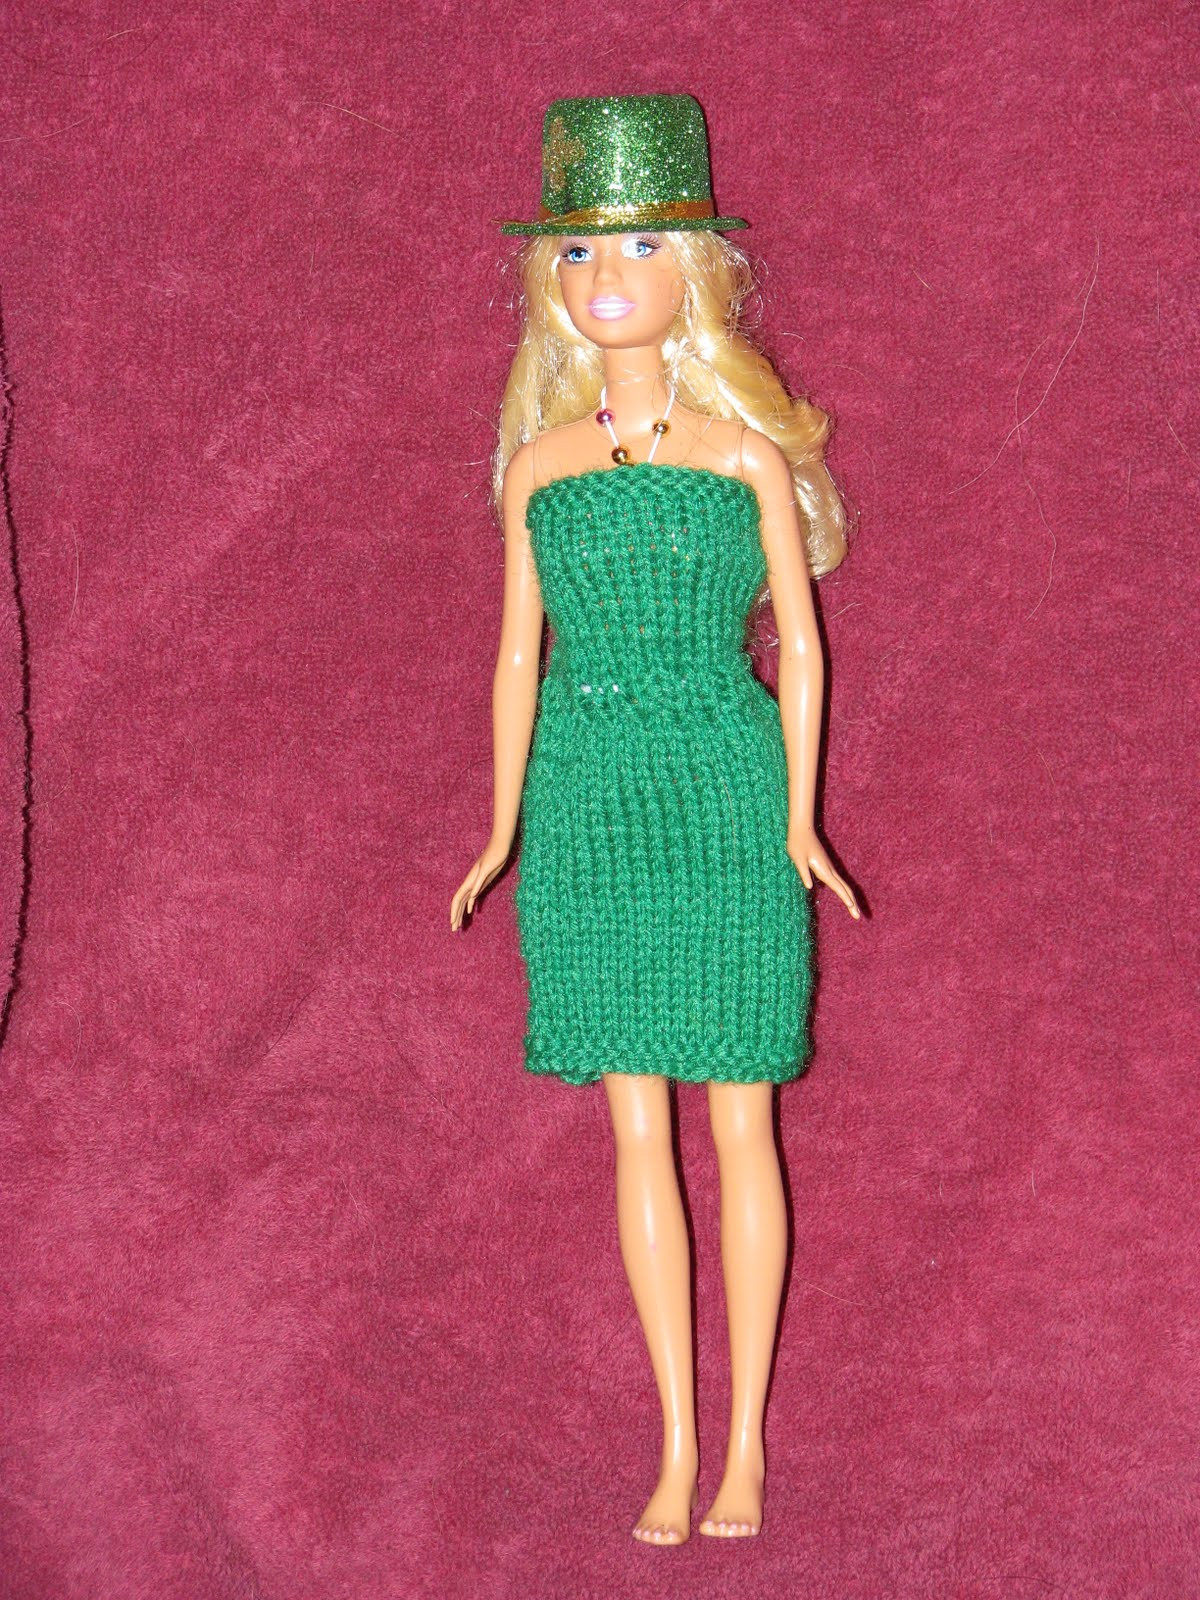 Best Of Free Barbie Doll Sewing Patterns Free Patterns Barbie Dress Patterns Of Marvelous 46 Photos Barbie Dress Patterns